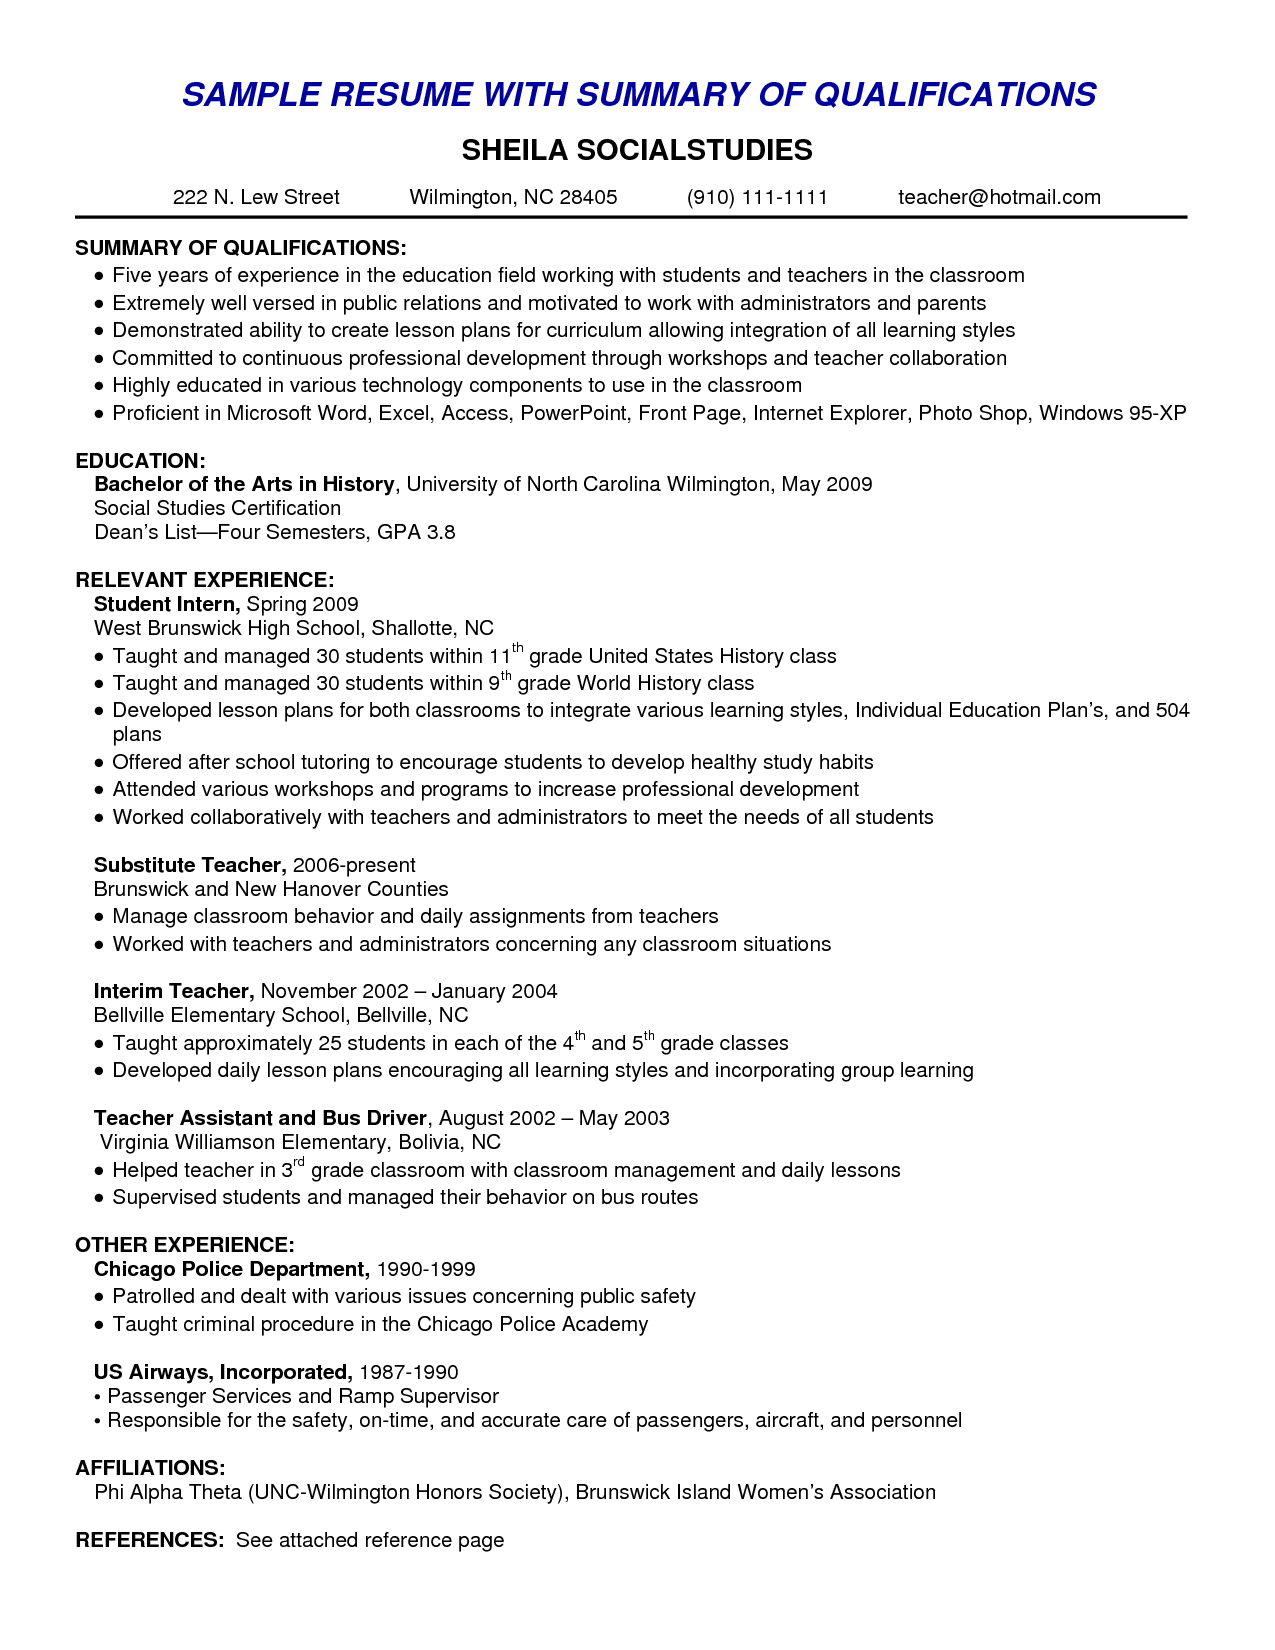 Summary For Resume Examples Free Download Interview Questions And Answers  For Retail Resumes Cover Letter Professional  Resume Examples Free Download